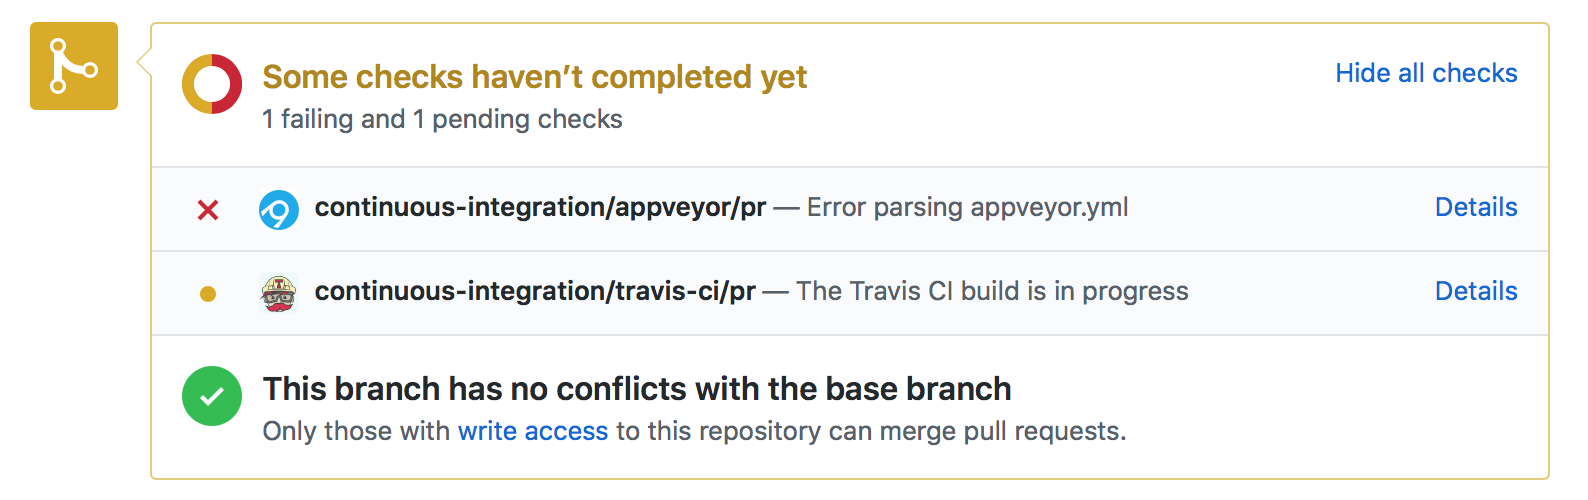 CI: continuous-integration/appveyor/pr — Error parsing